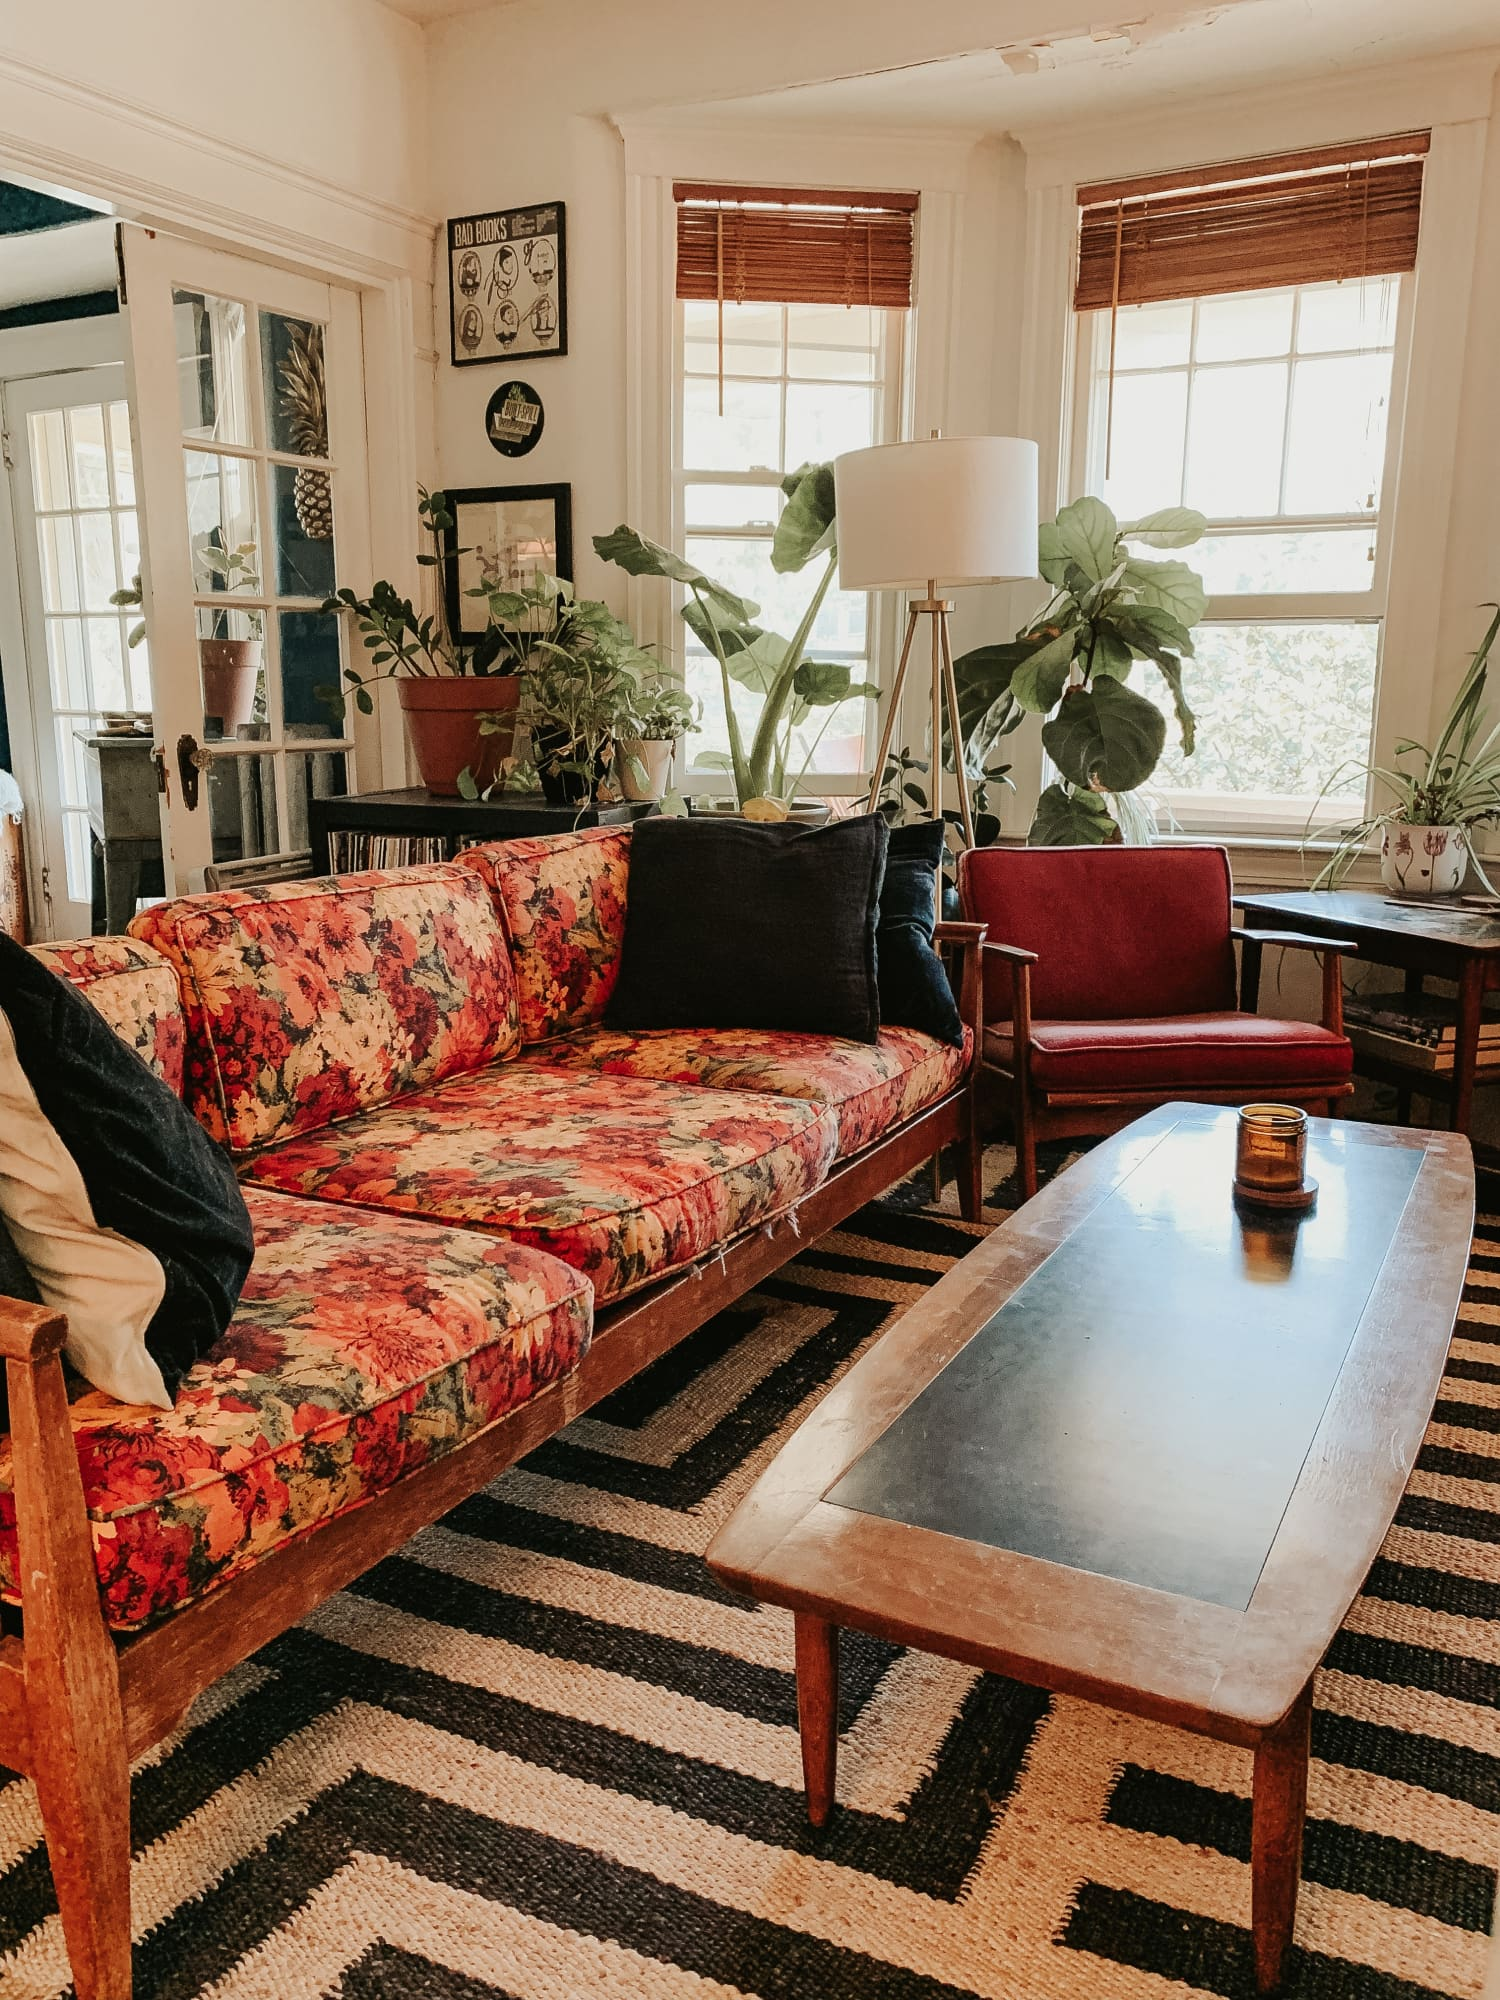 This Apartment Has a Bold Red Kitchen and a Fabulous Floral Sofa Passed Down for Generations